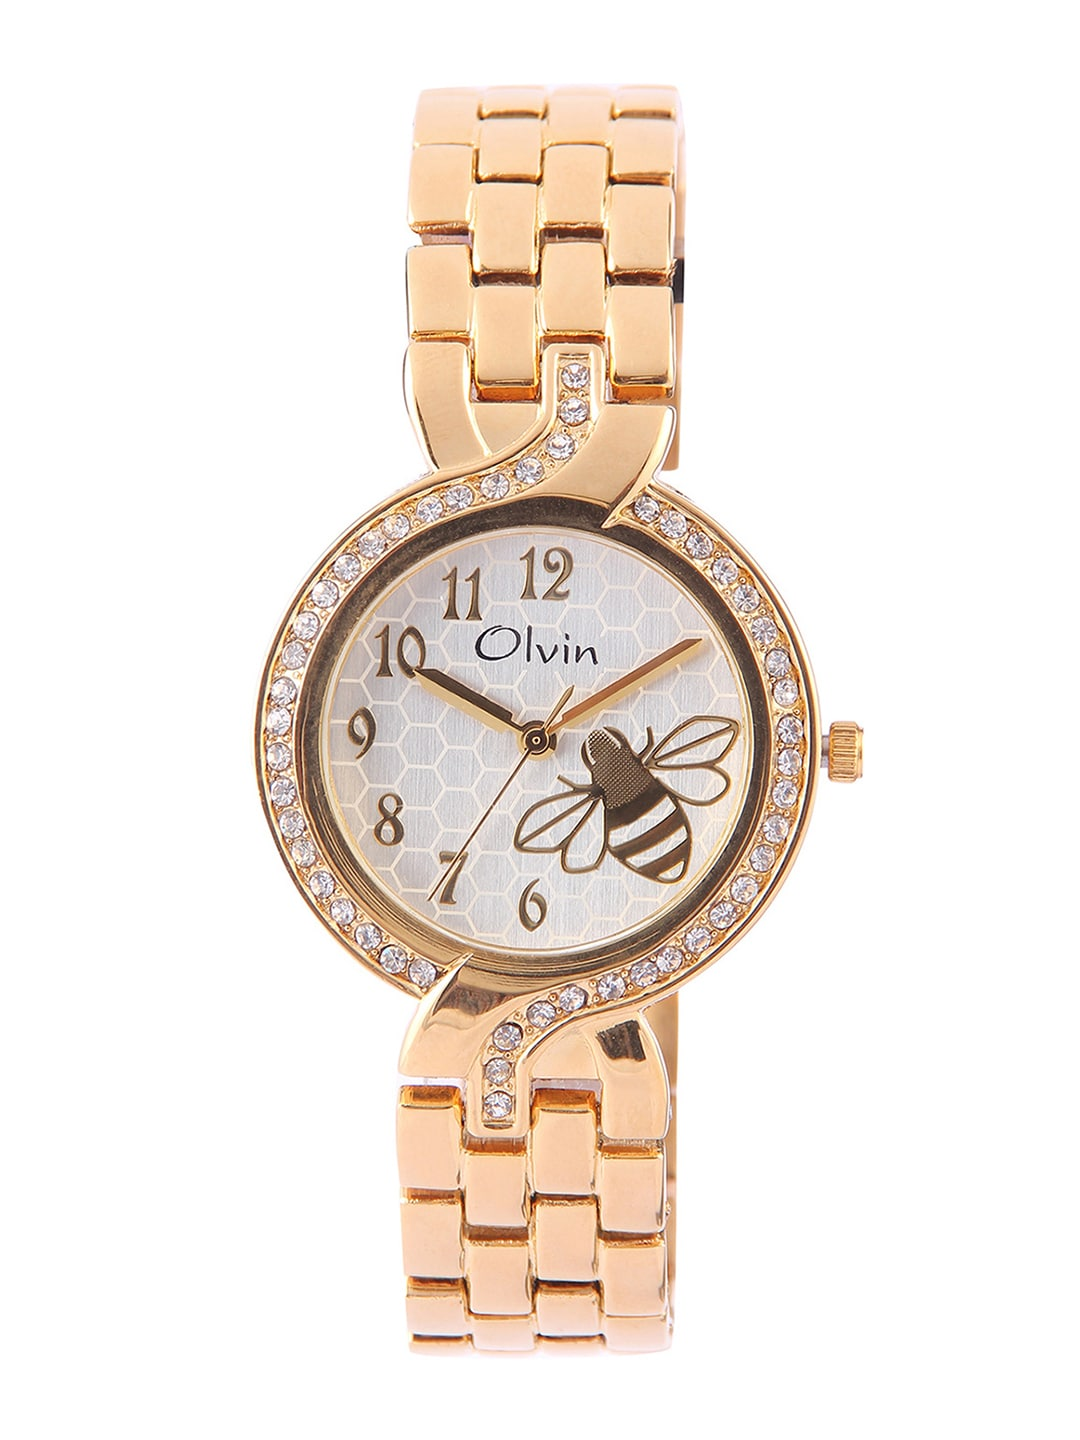 Olvin Women Silver-Toned Dial Watch 1671-YM01 image